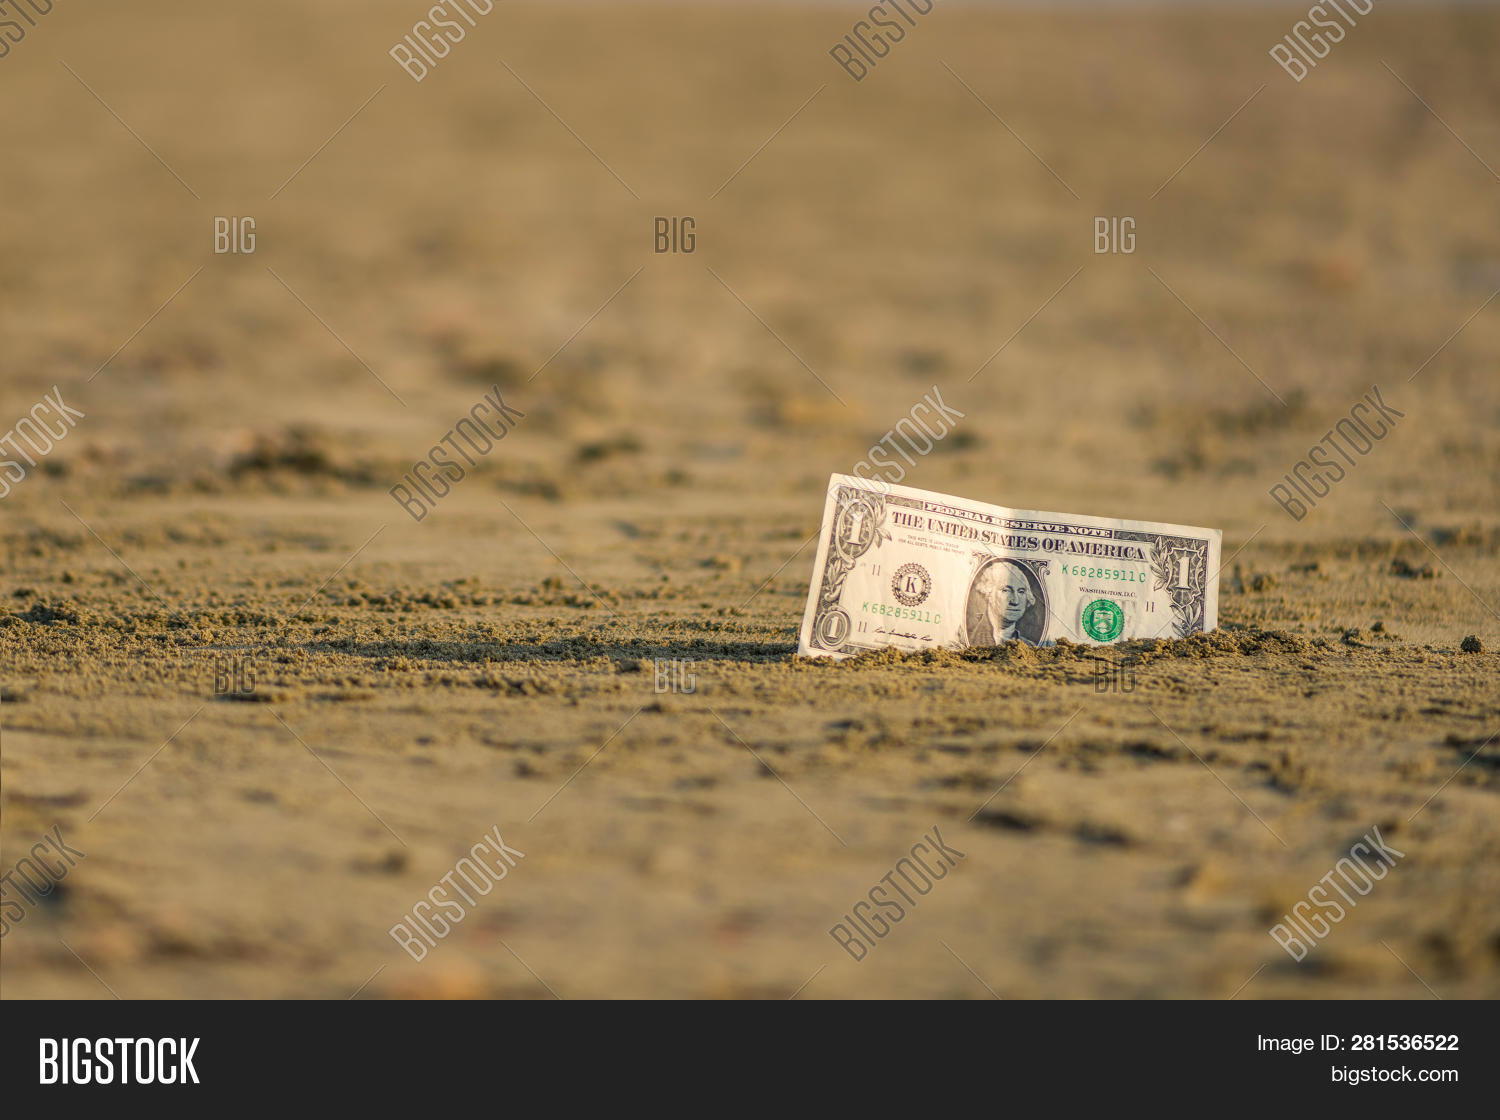 Banknote Value One Image & Photo (Free Trial) | Bigstock